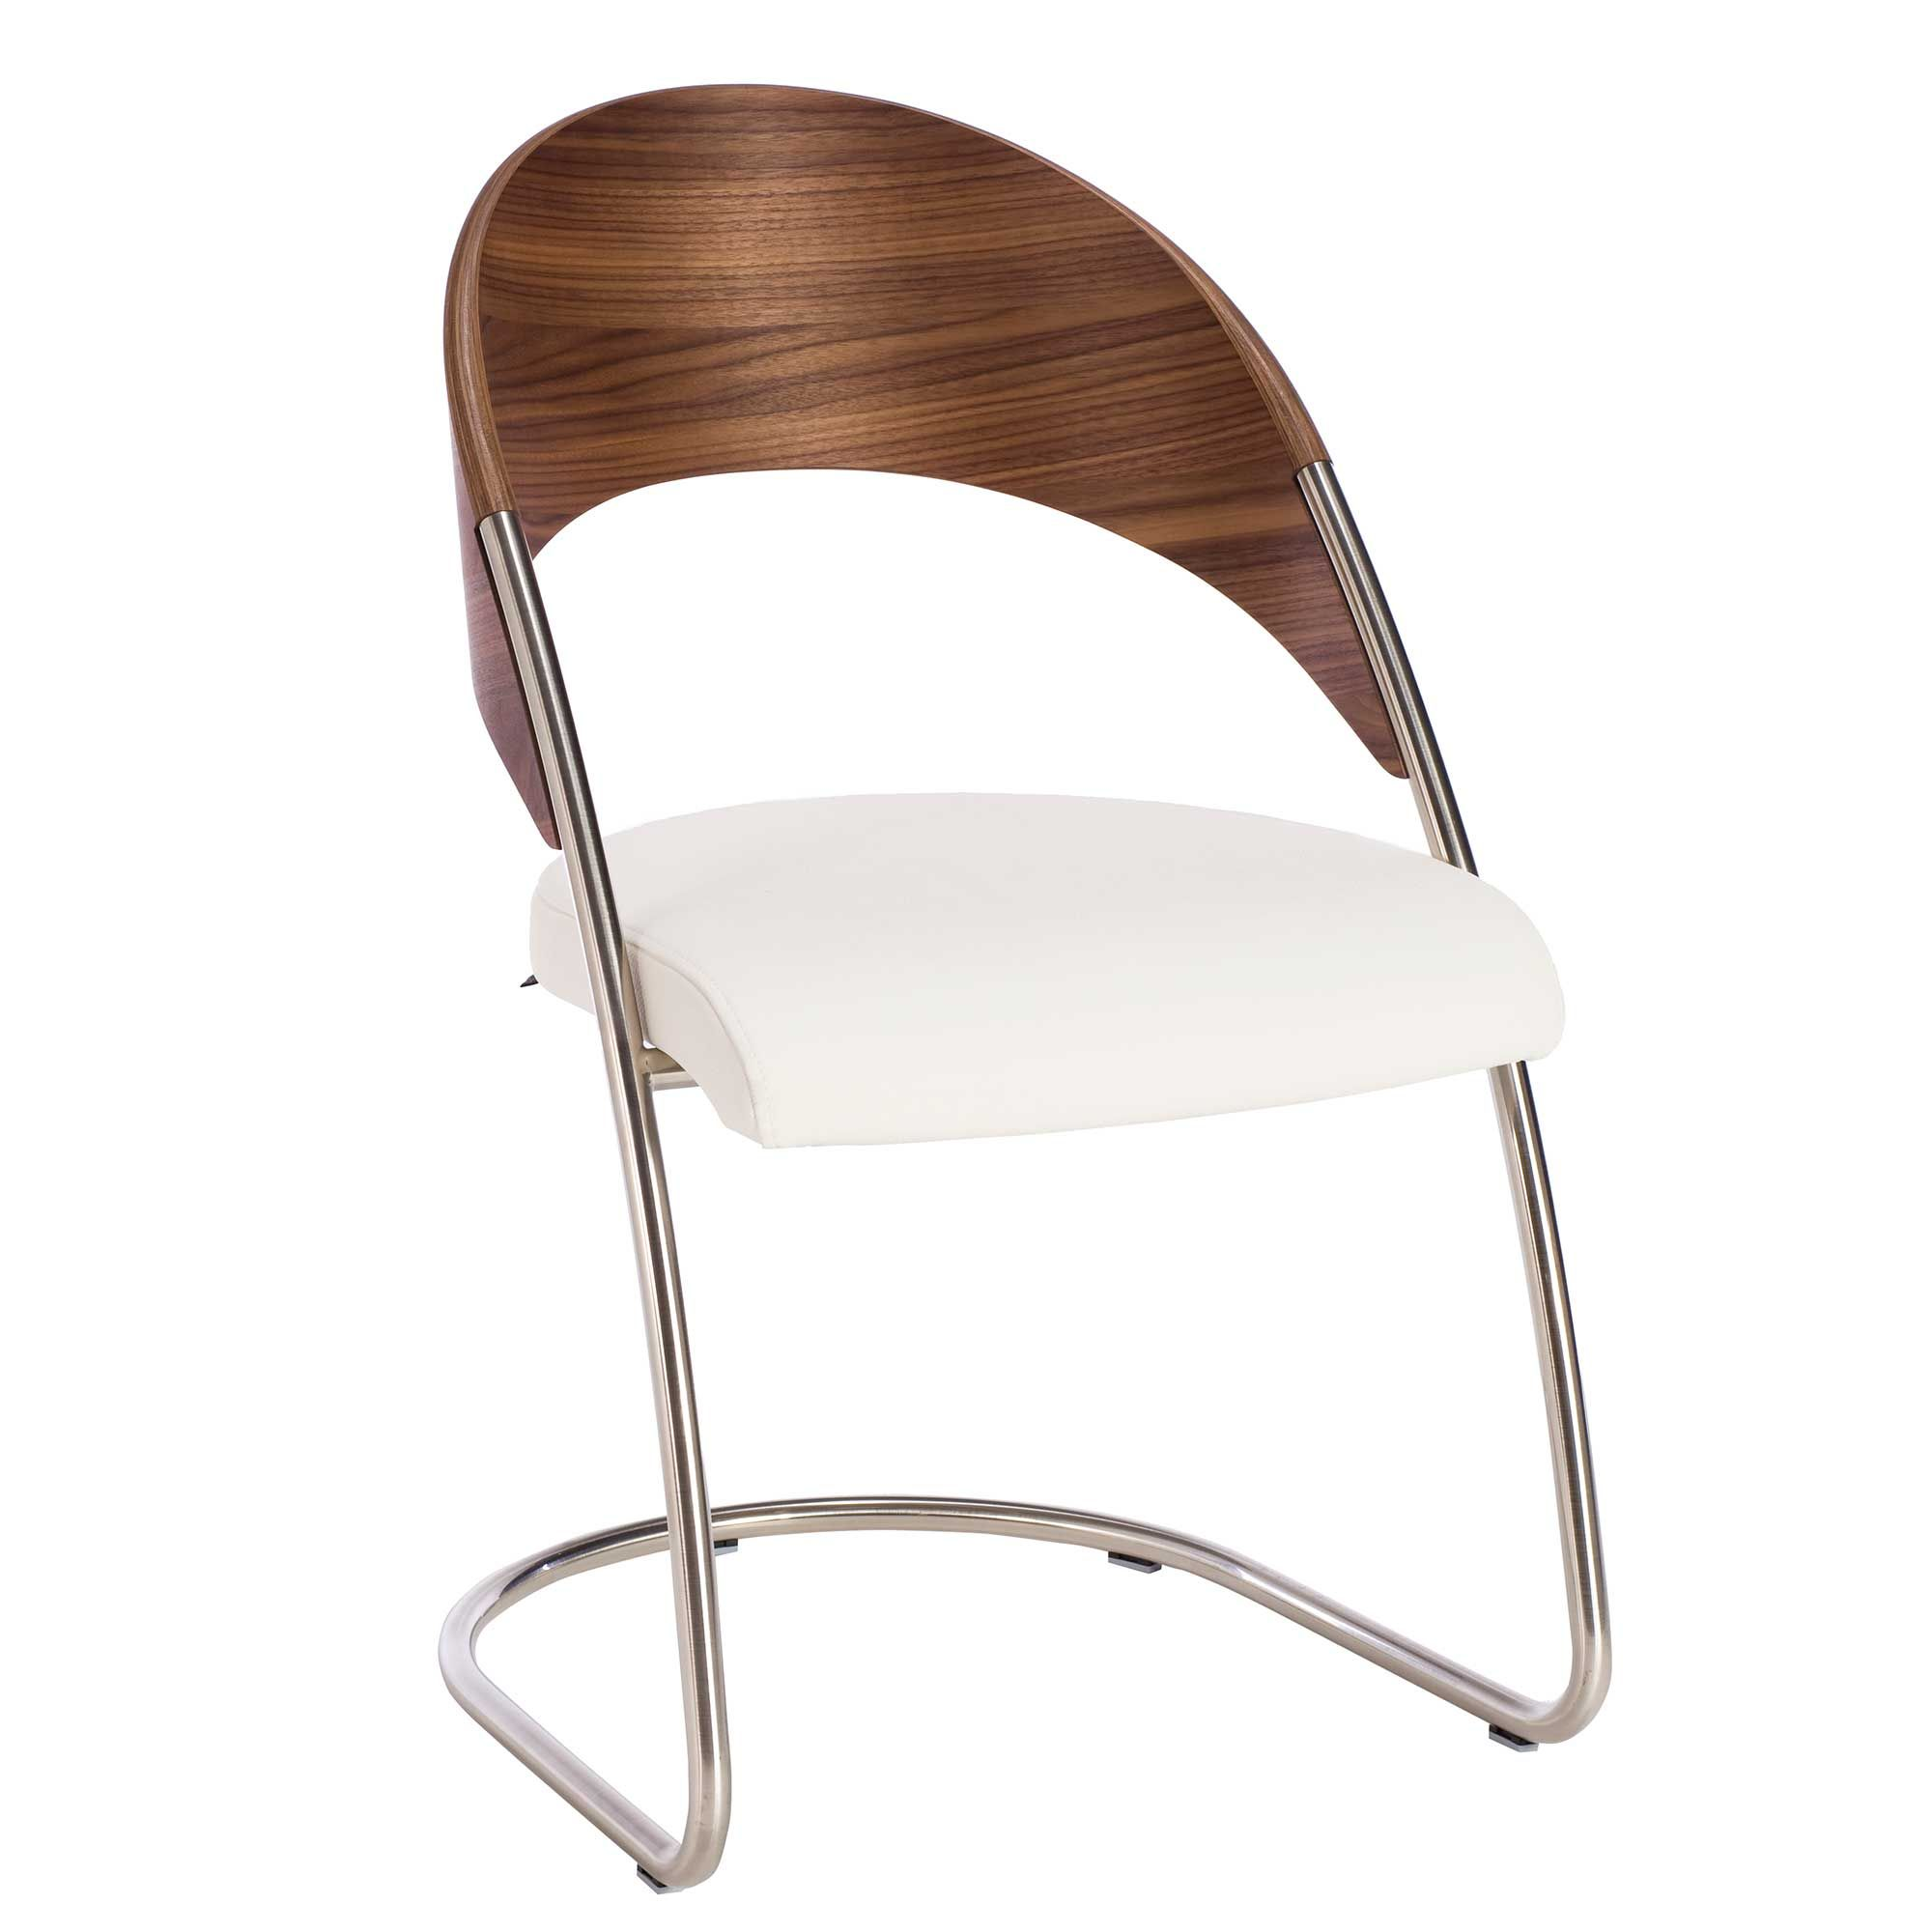 Phenomenal Alexa Dining Chair Dublin Stone And Colorado Walnut Caraccident5 Cool Chair Designs And Ideas Caraccident5Info